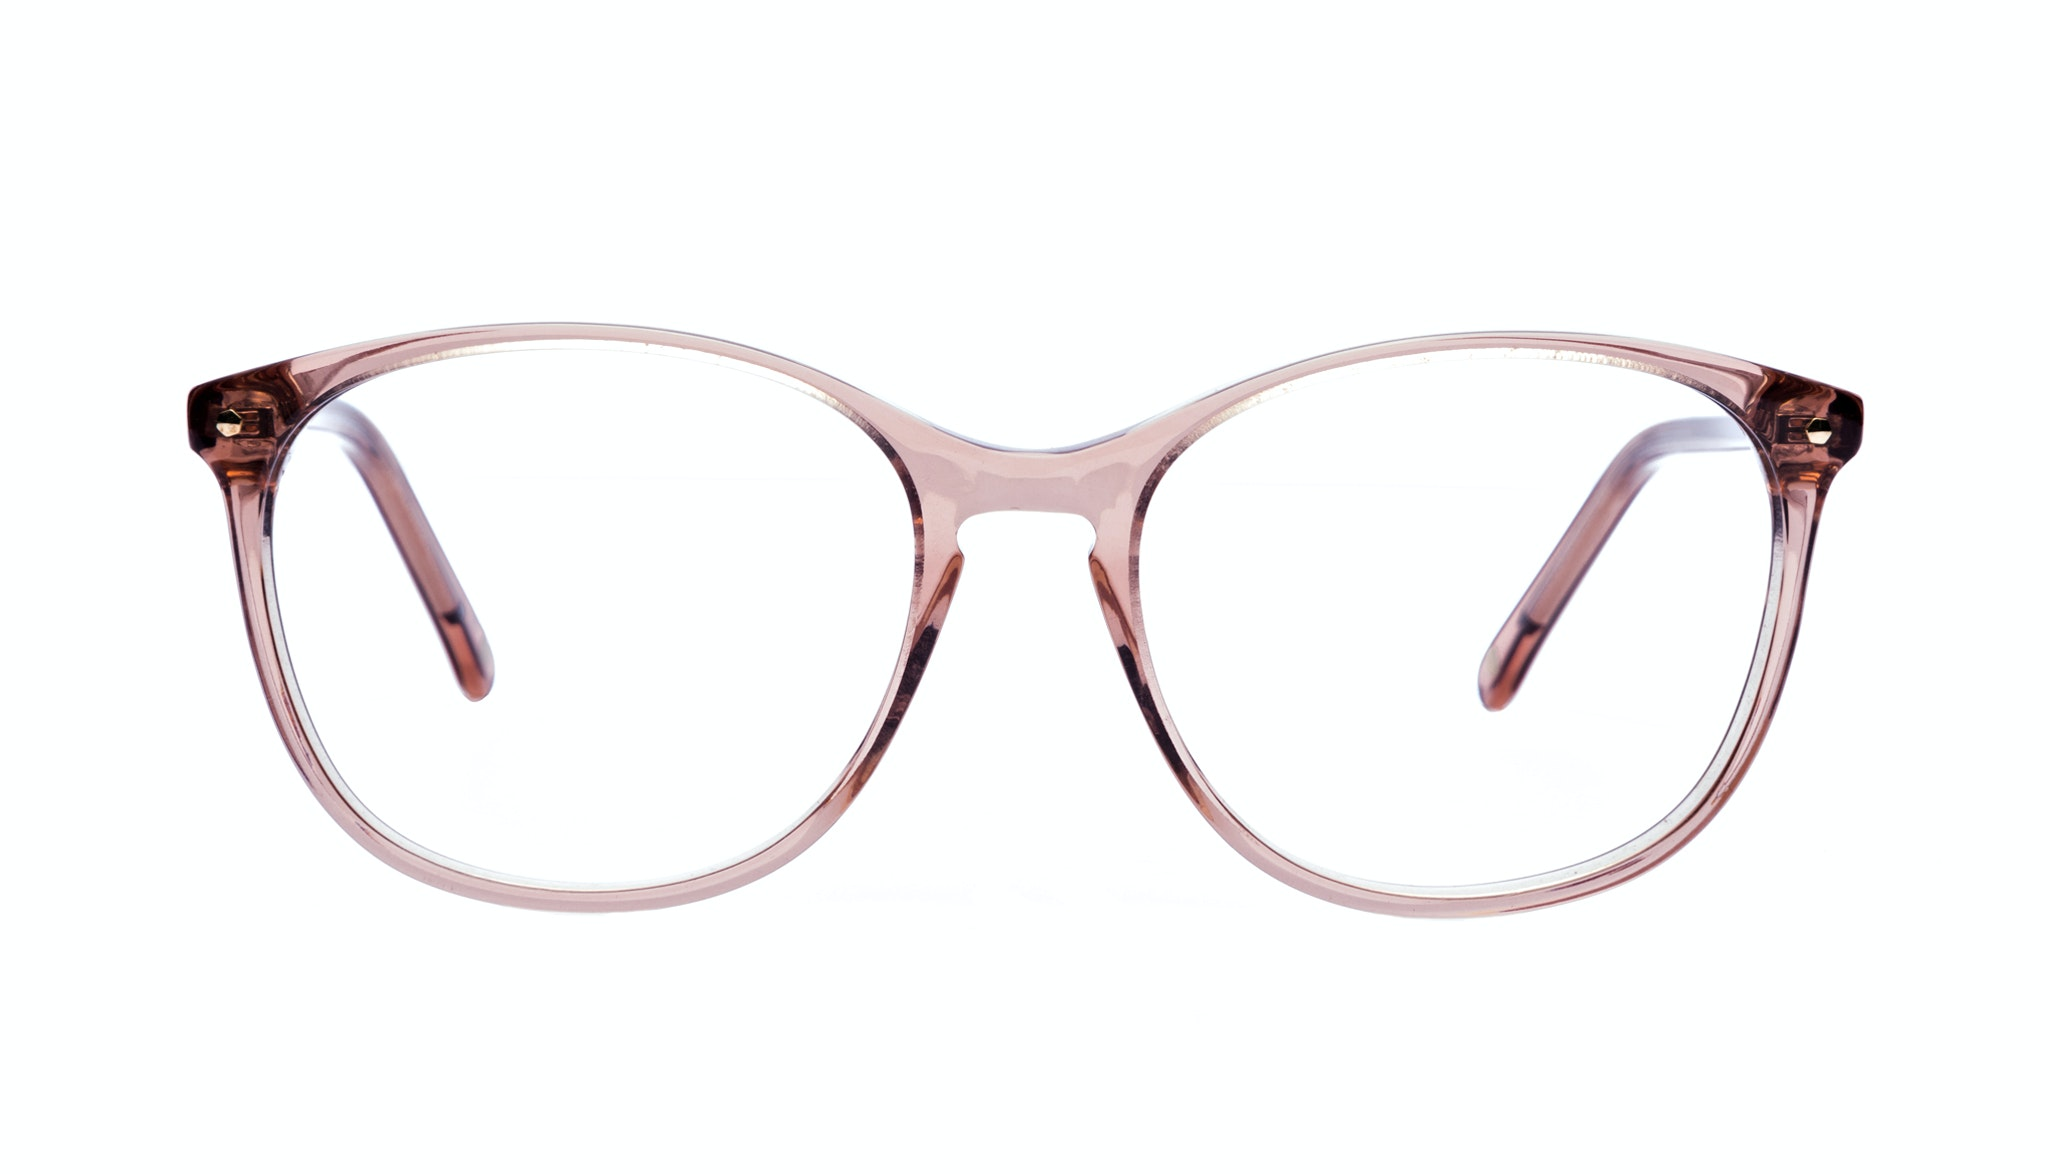 Affordable Fashion Glasses Rectangle Round Eyeglasses Women Nadine Rose